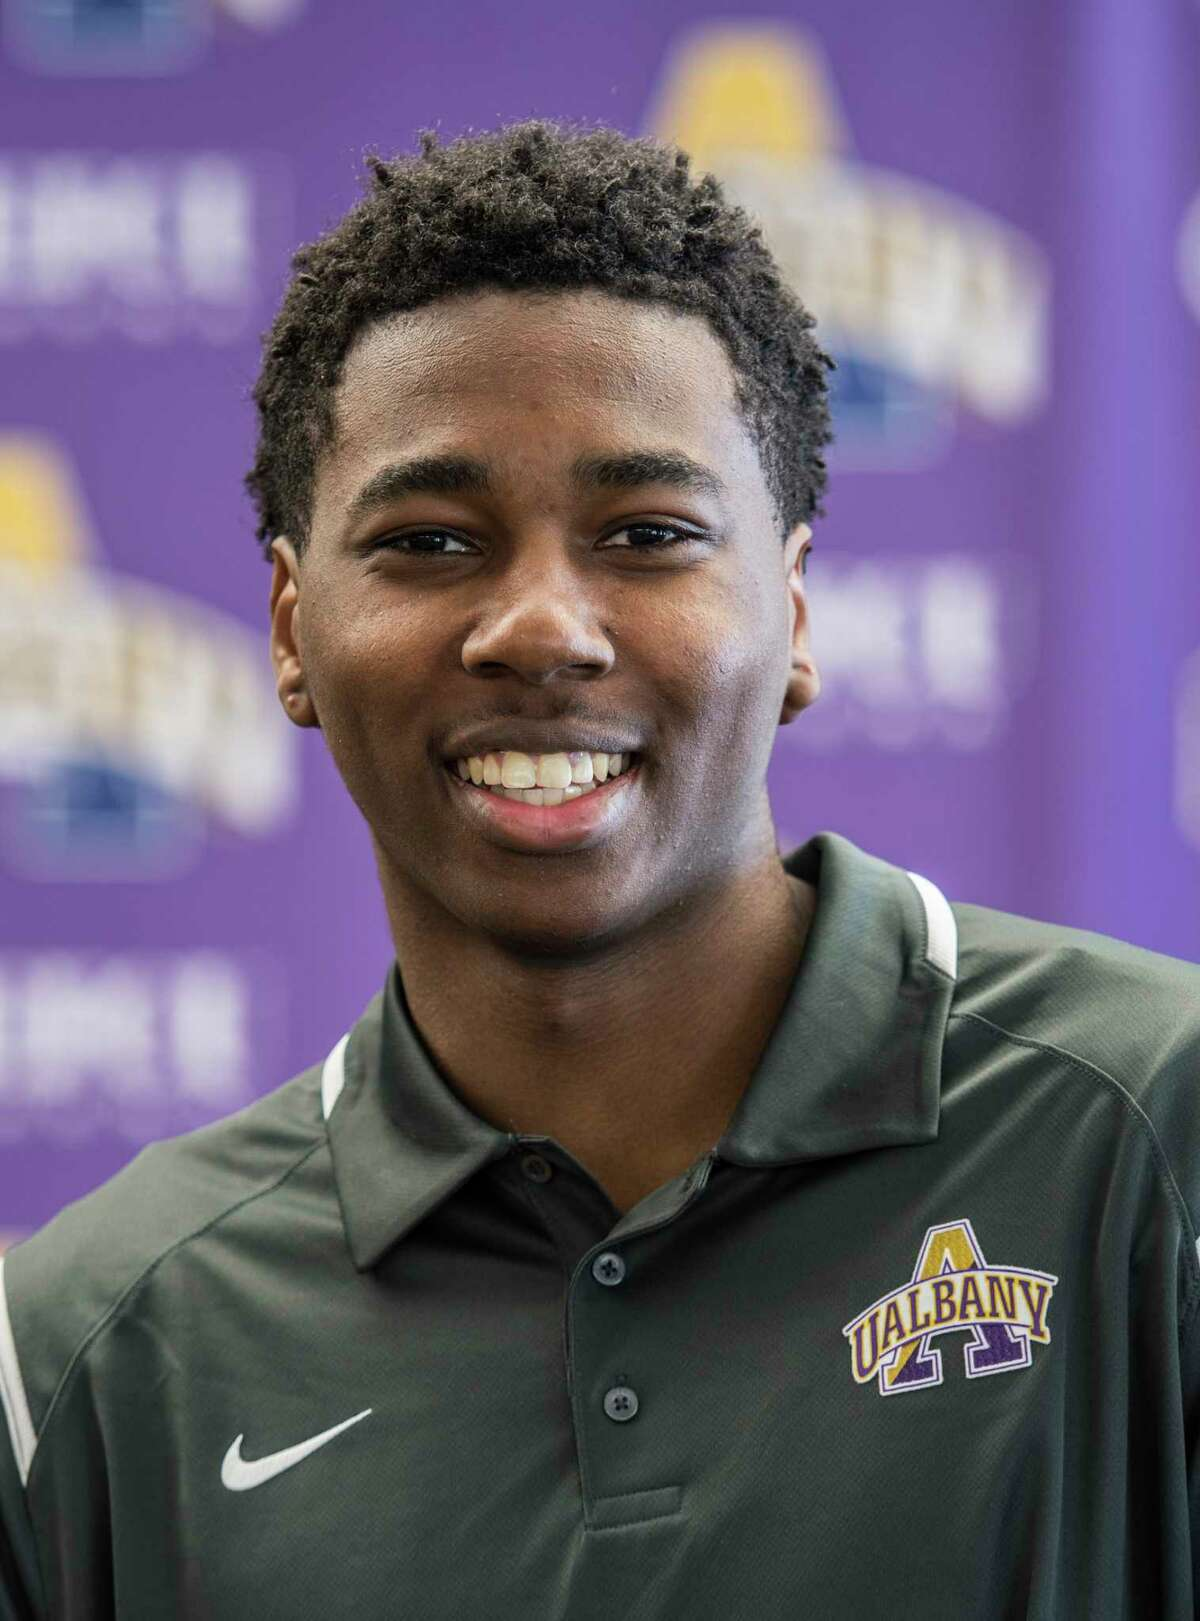 Redshirt sophomore Xavier Cochran at the press day for the University at Albany Basketball team held on campus Thursday Oct. 12, 2017 in Albany, (Skip Dickstein/Times Union)